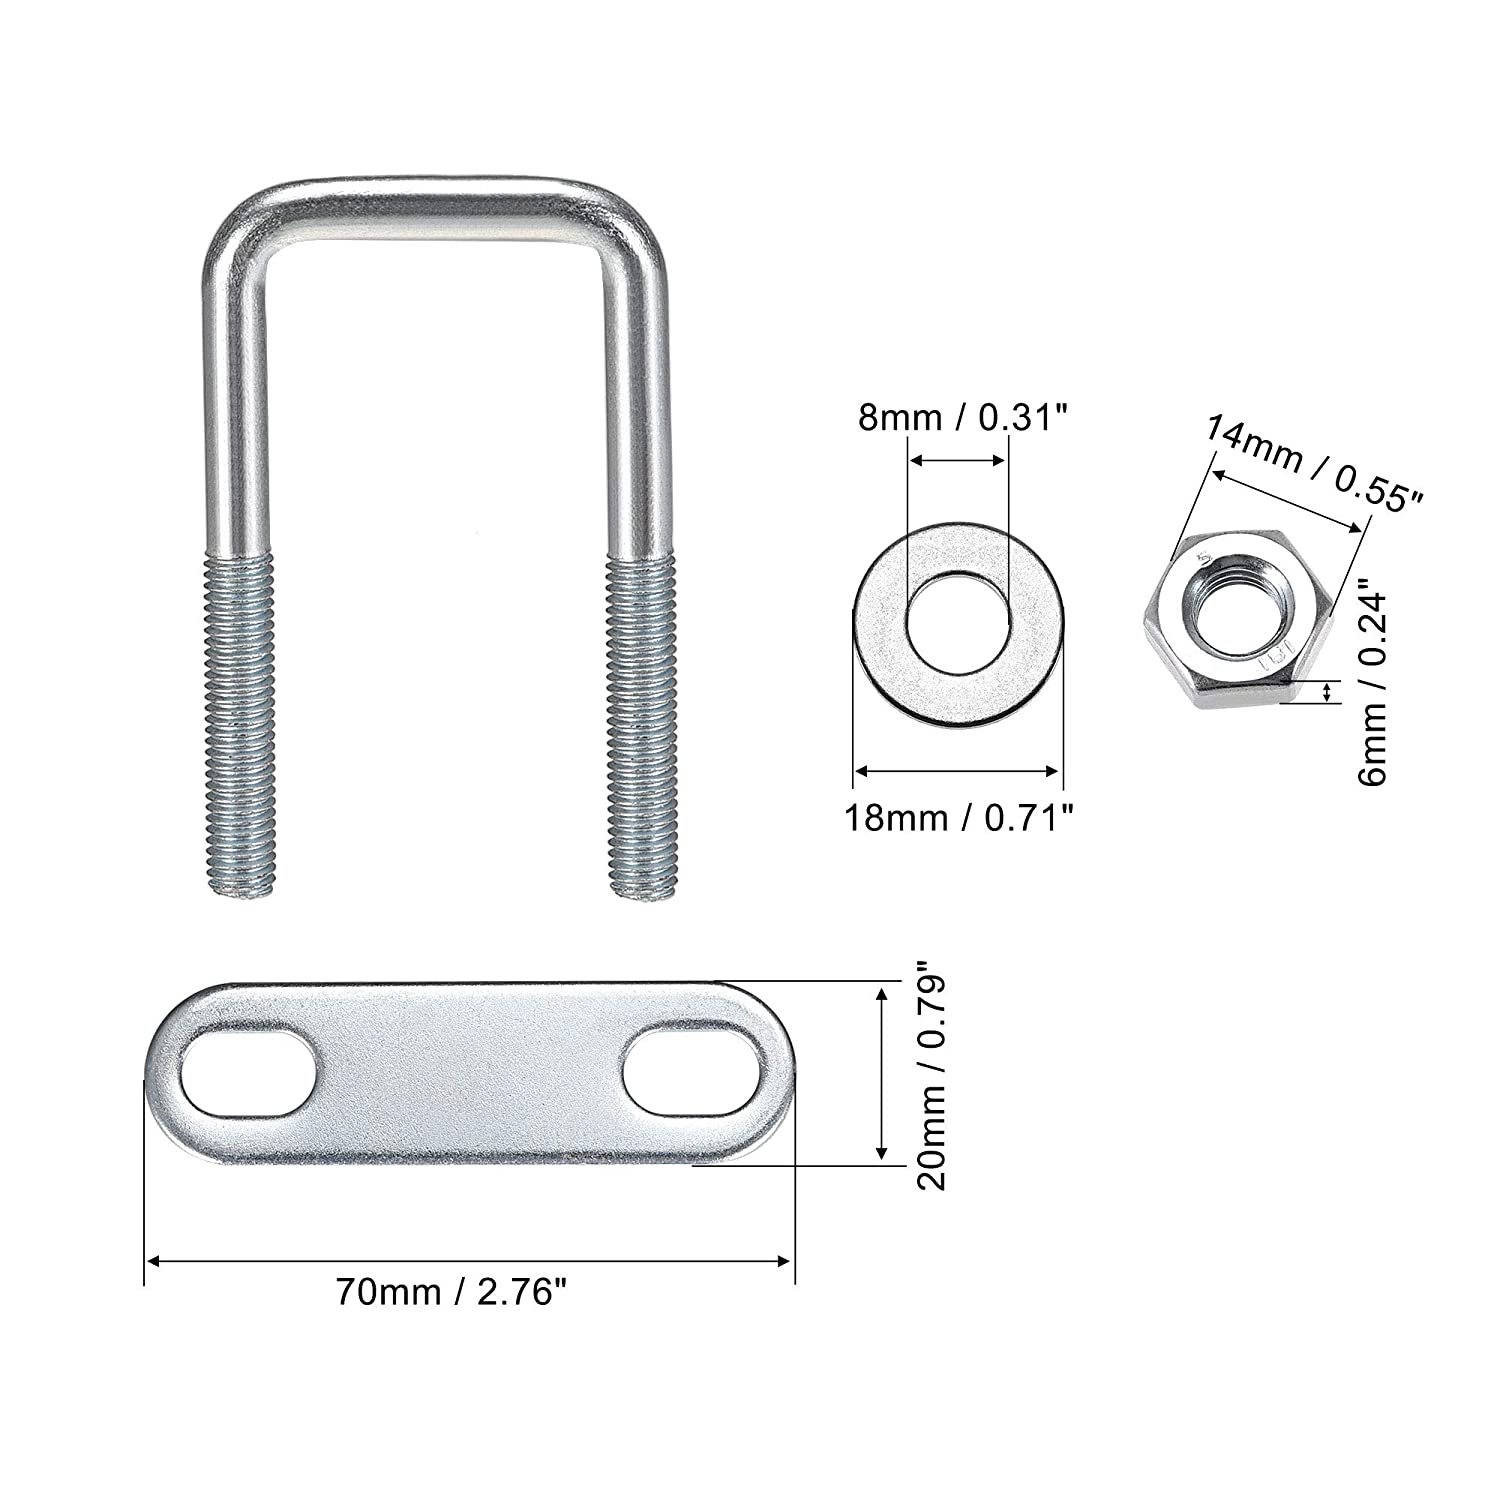 Round Washers 4 Set uxcell Square U-Bolts 1-5//8 40mm Inner Width Carbon Steel M8 with Nuts Frame Plate